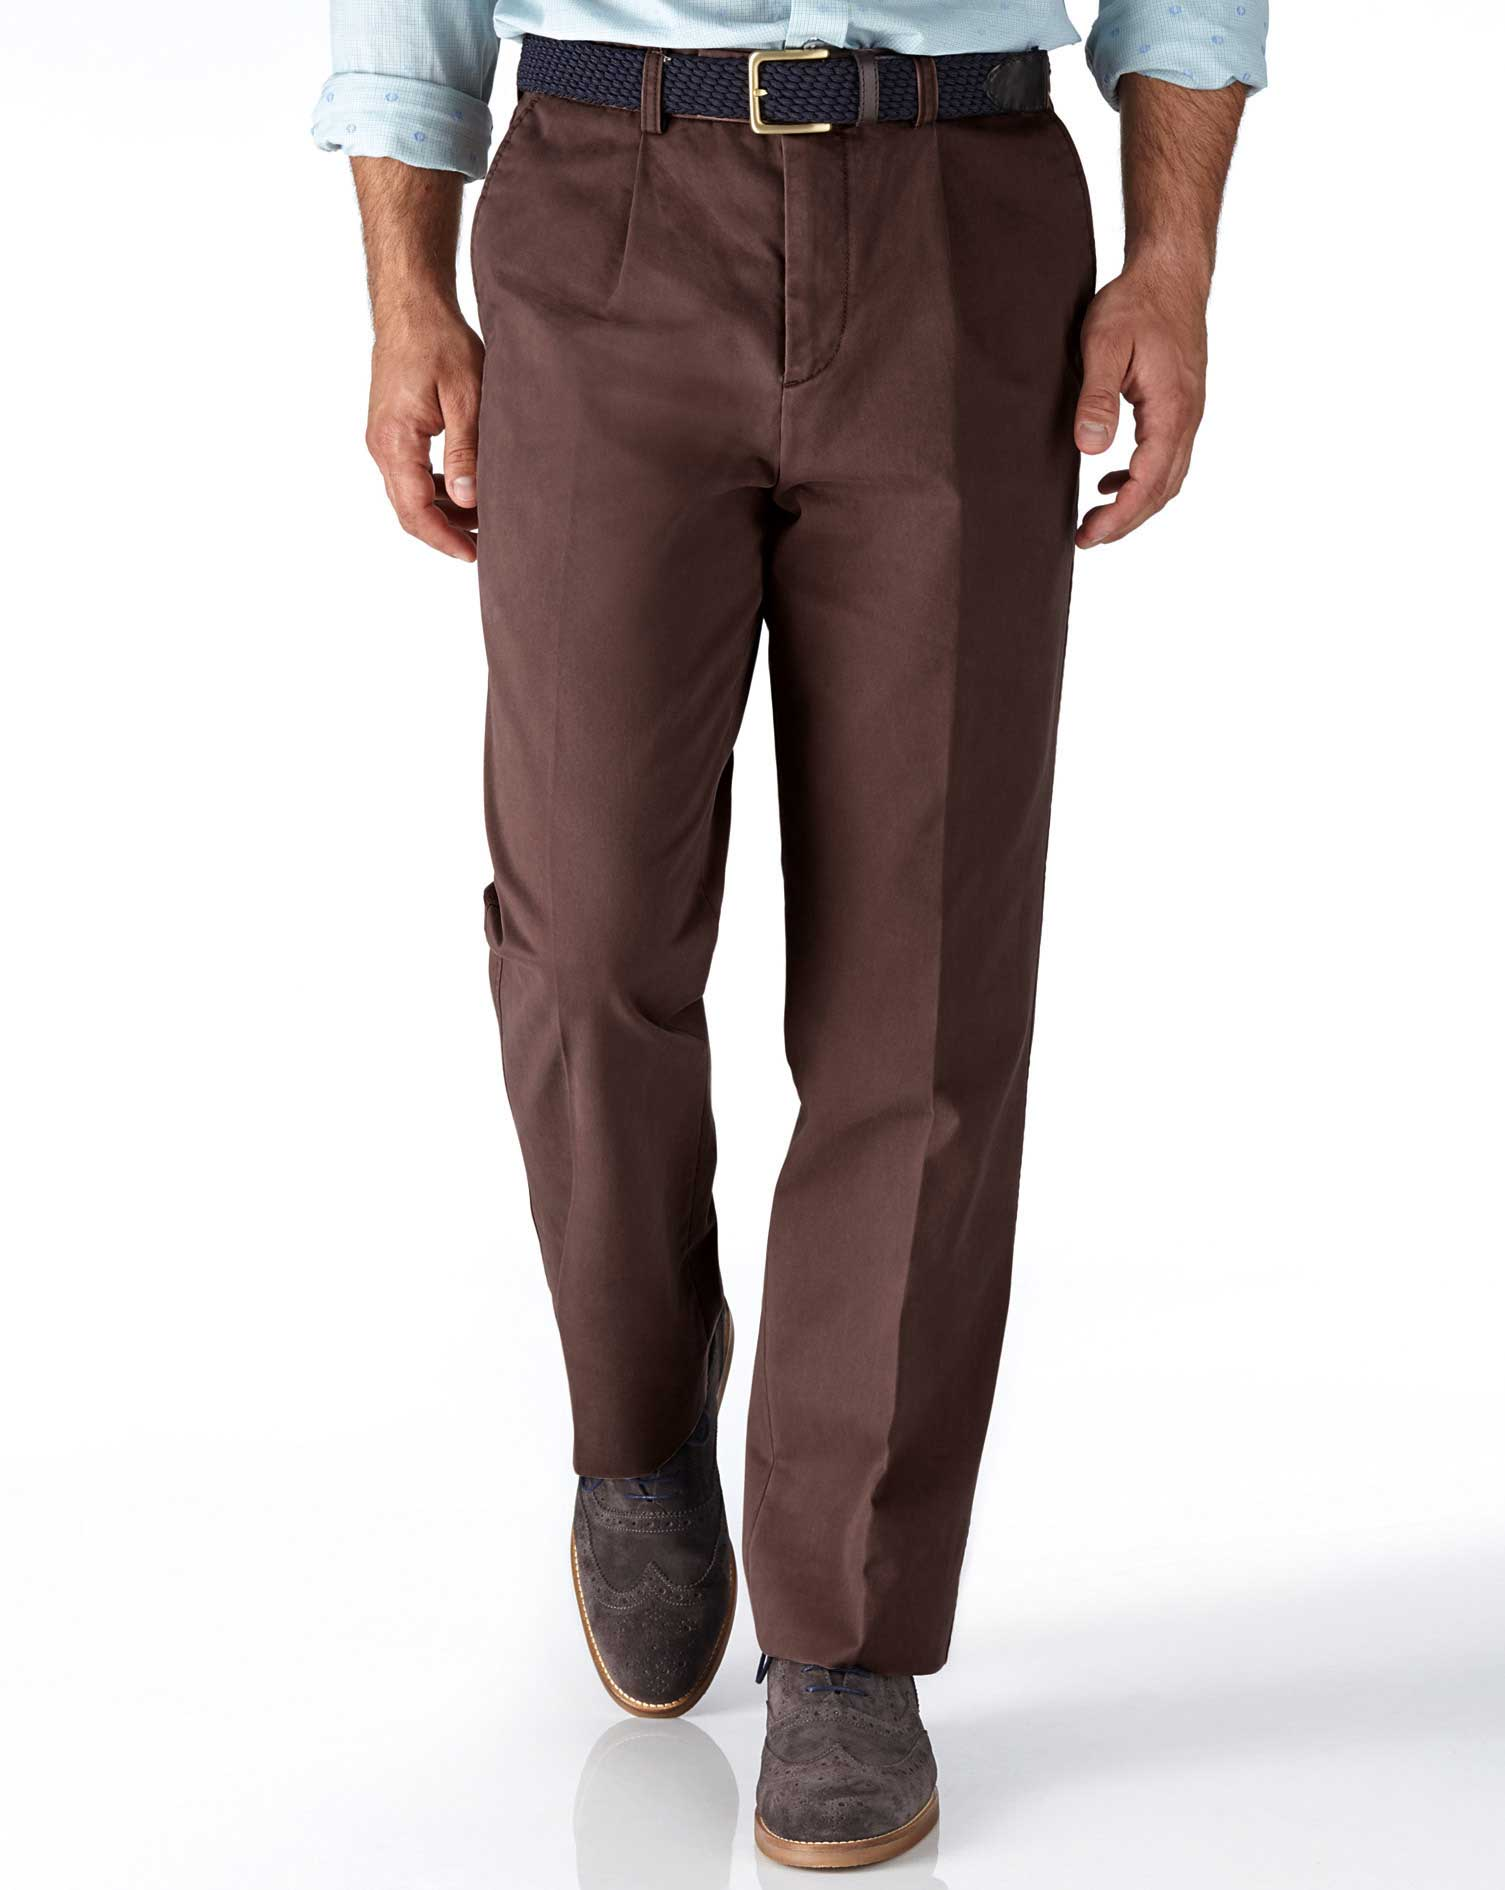 Brown Classic Fit Single Pleat Cotton Chino Trousers Size W42 L29 by Charles Tyrwhitt